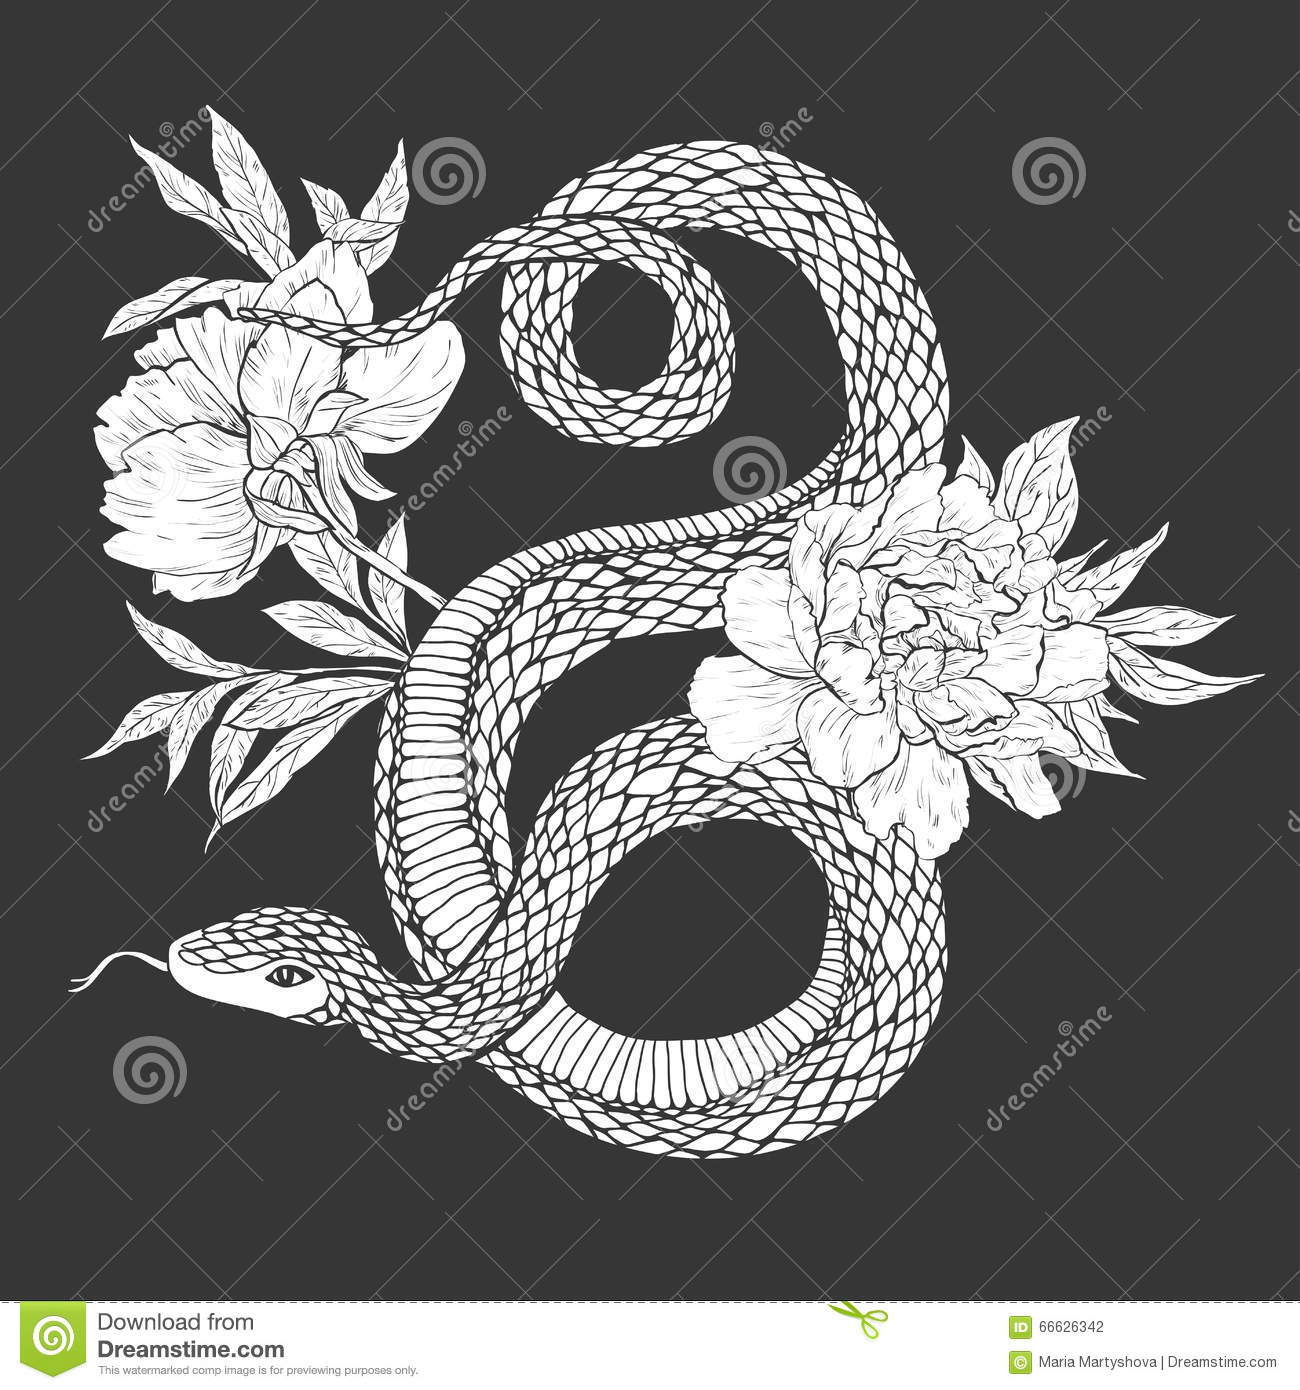 serpents et fleurs art de tatouage livres de coloriage illustration de vecteur image 66626342. Black Bedroom Furniture Sets. Home Design Ideas